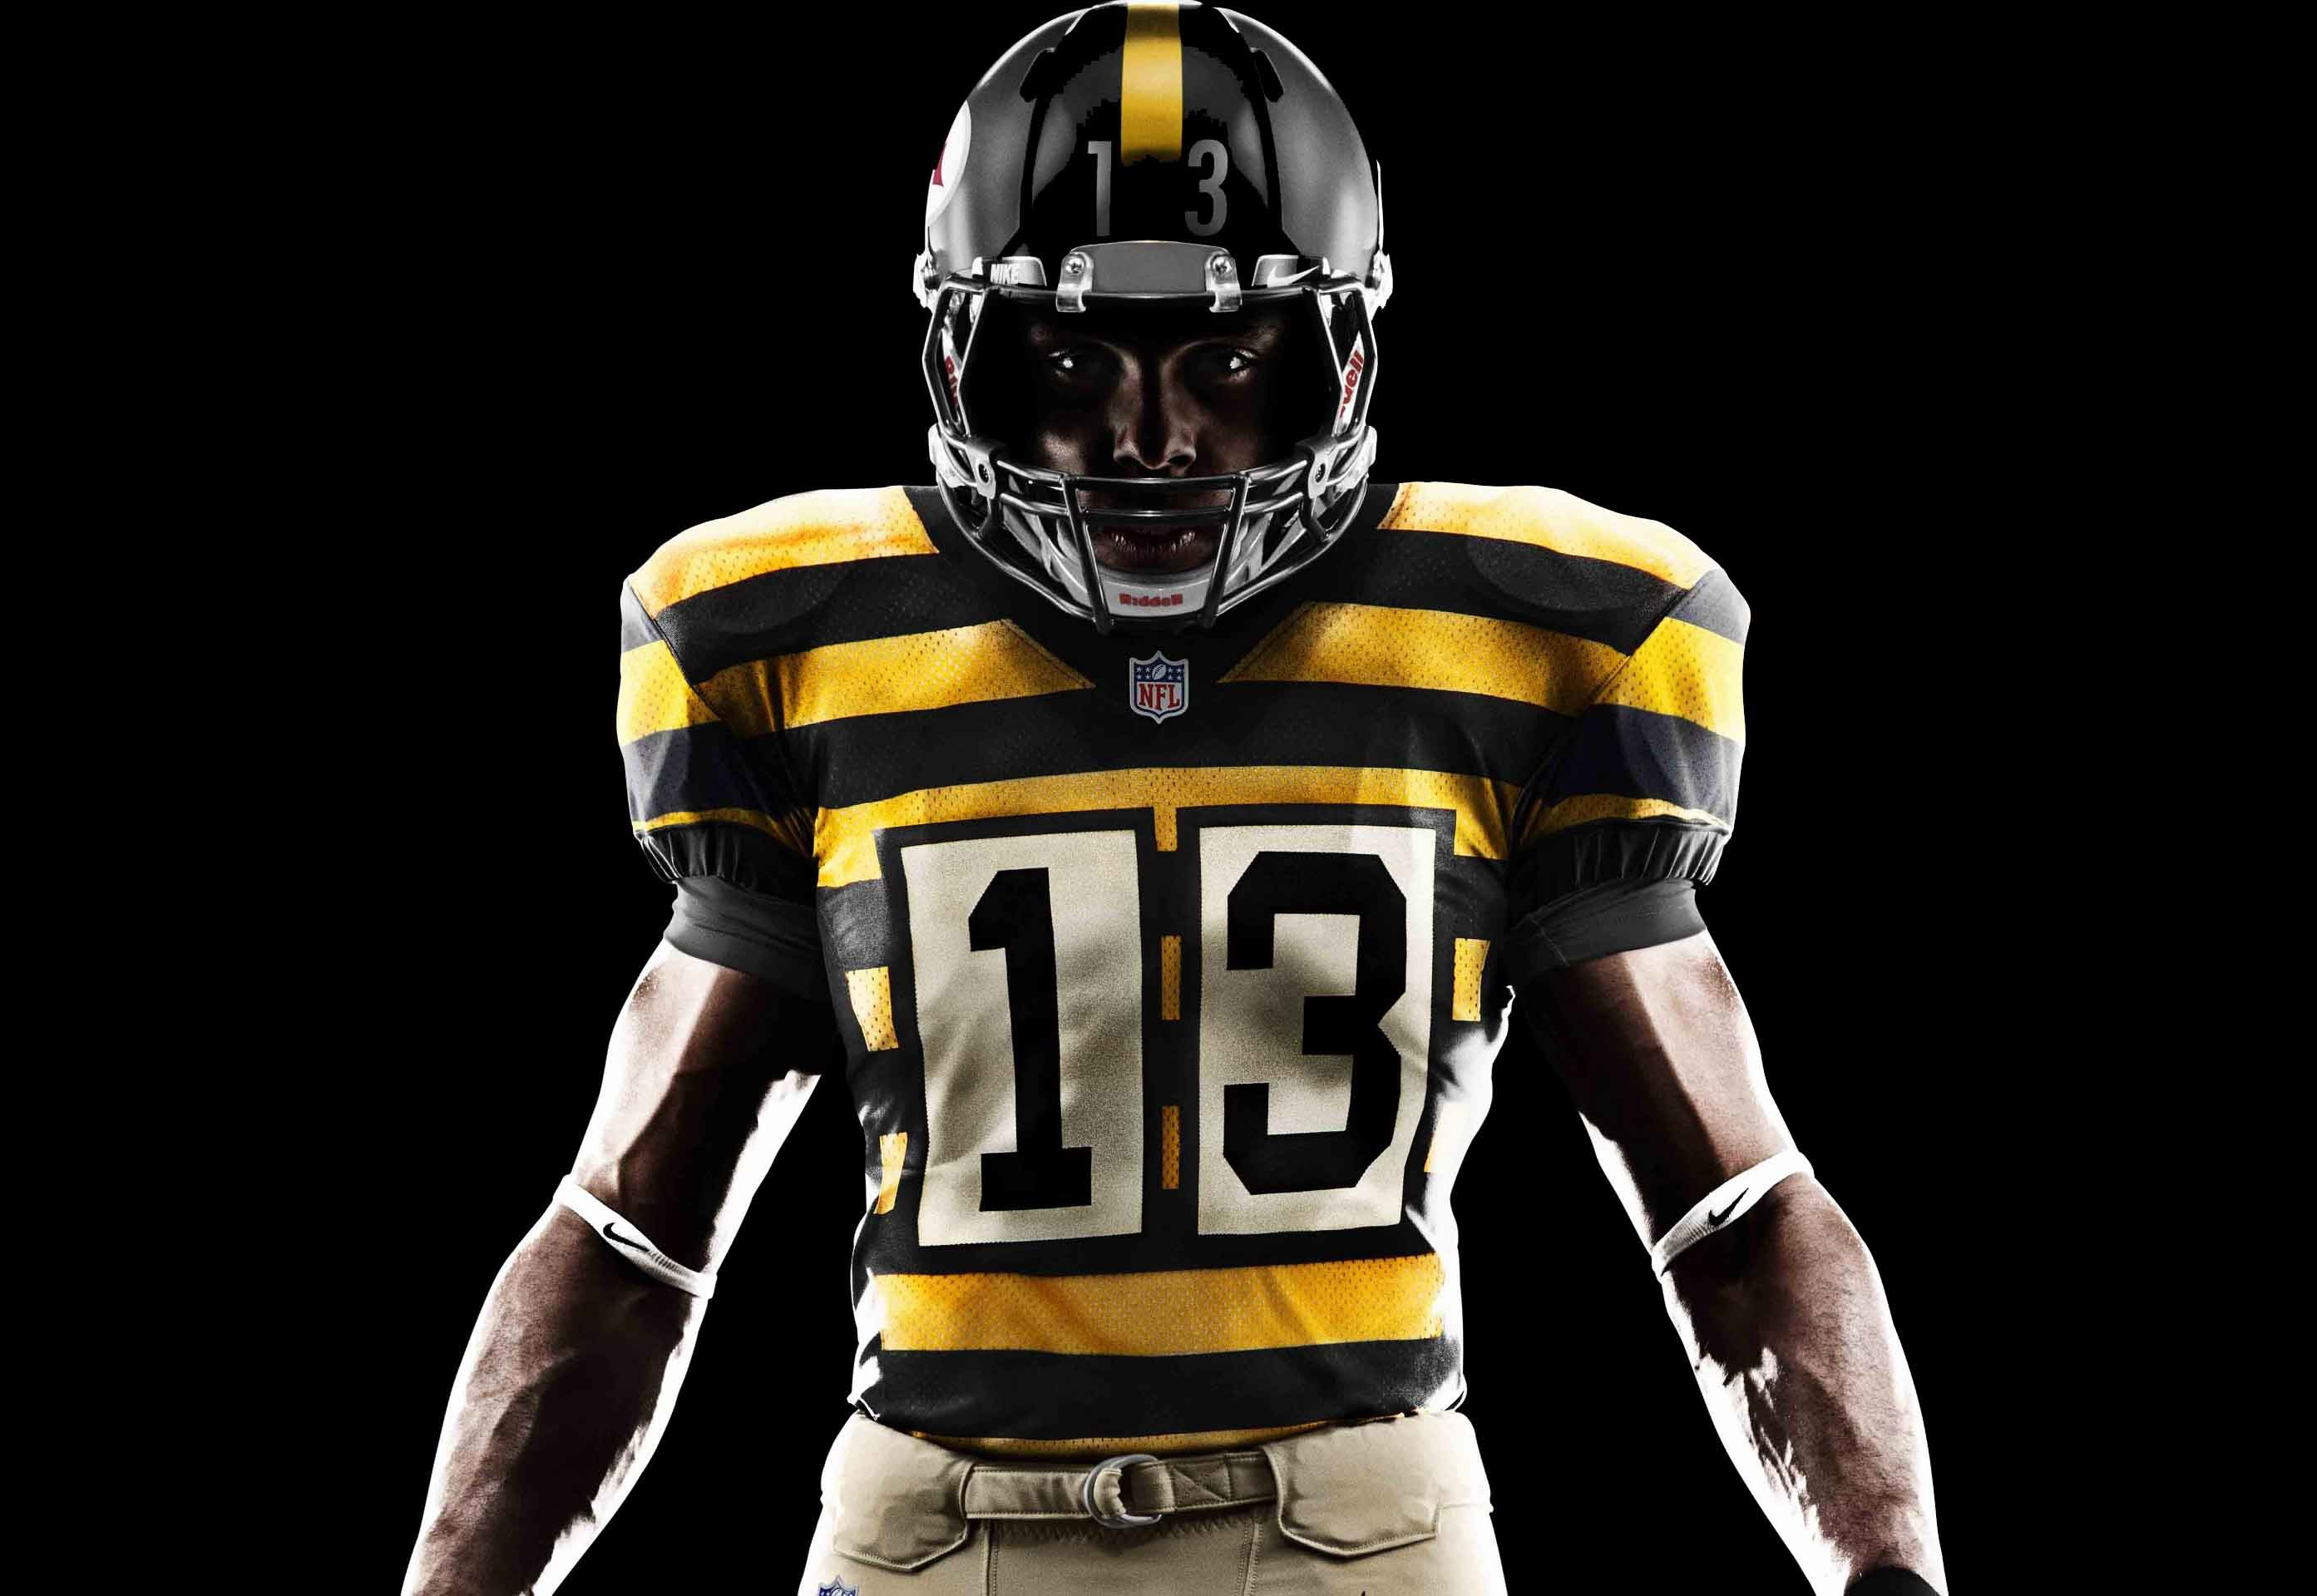 Football Wallpapers Hd For Android Pittsburgh Steelers Football Wallpapers 183 ①